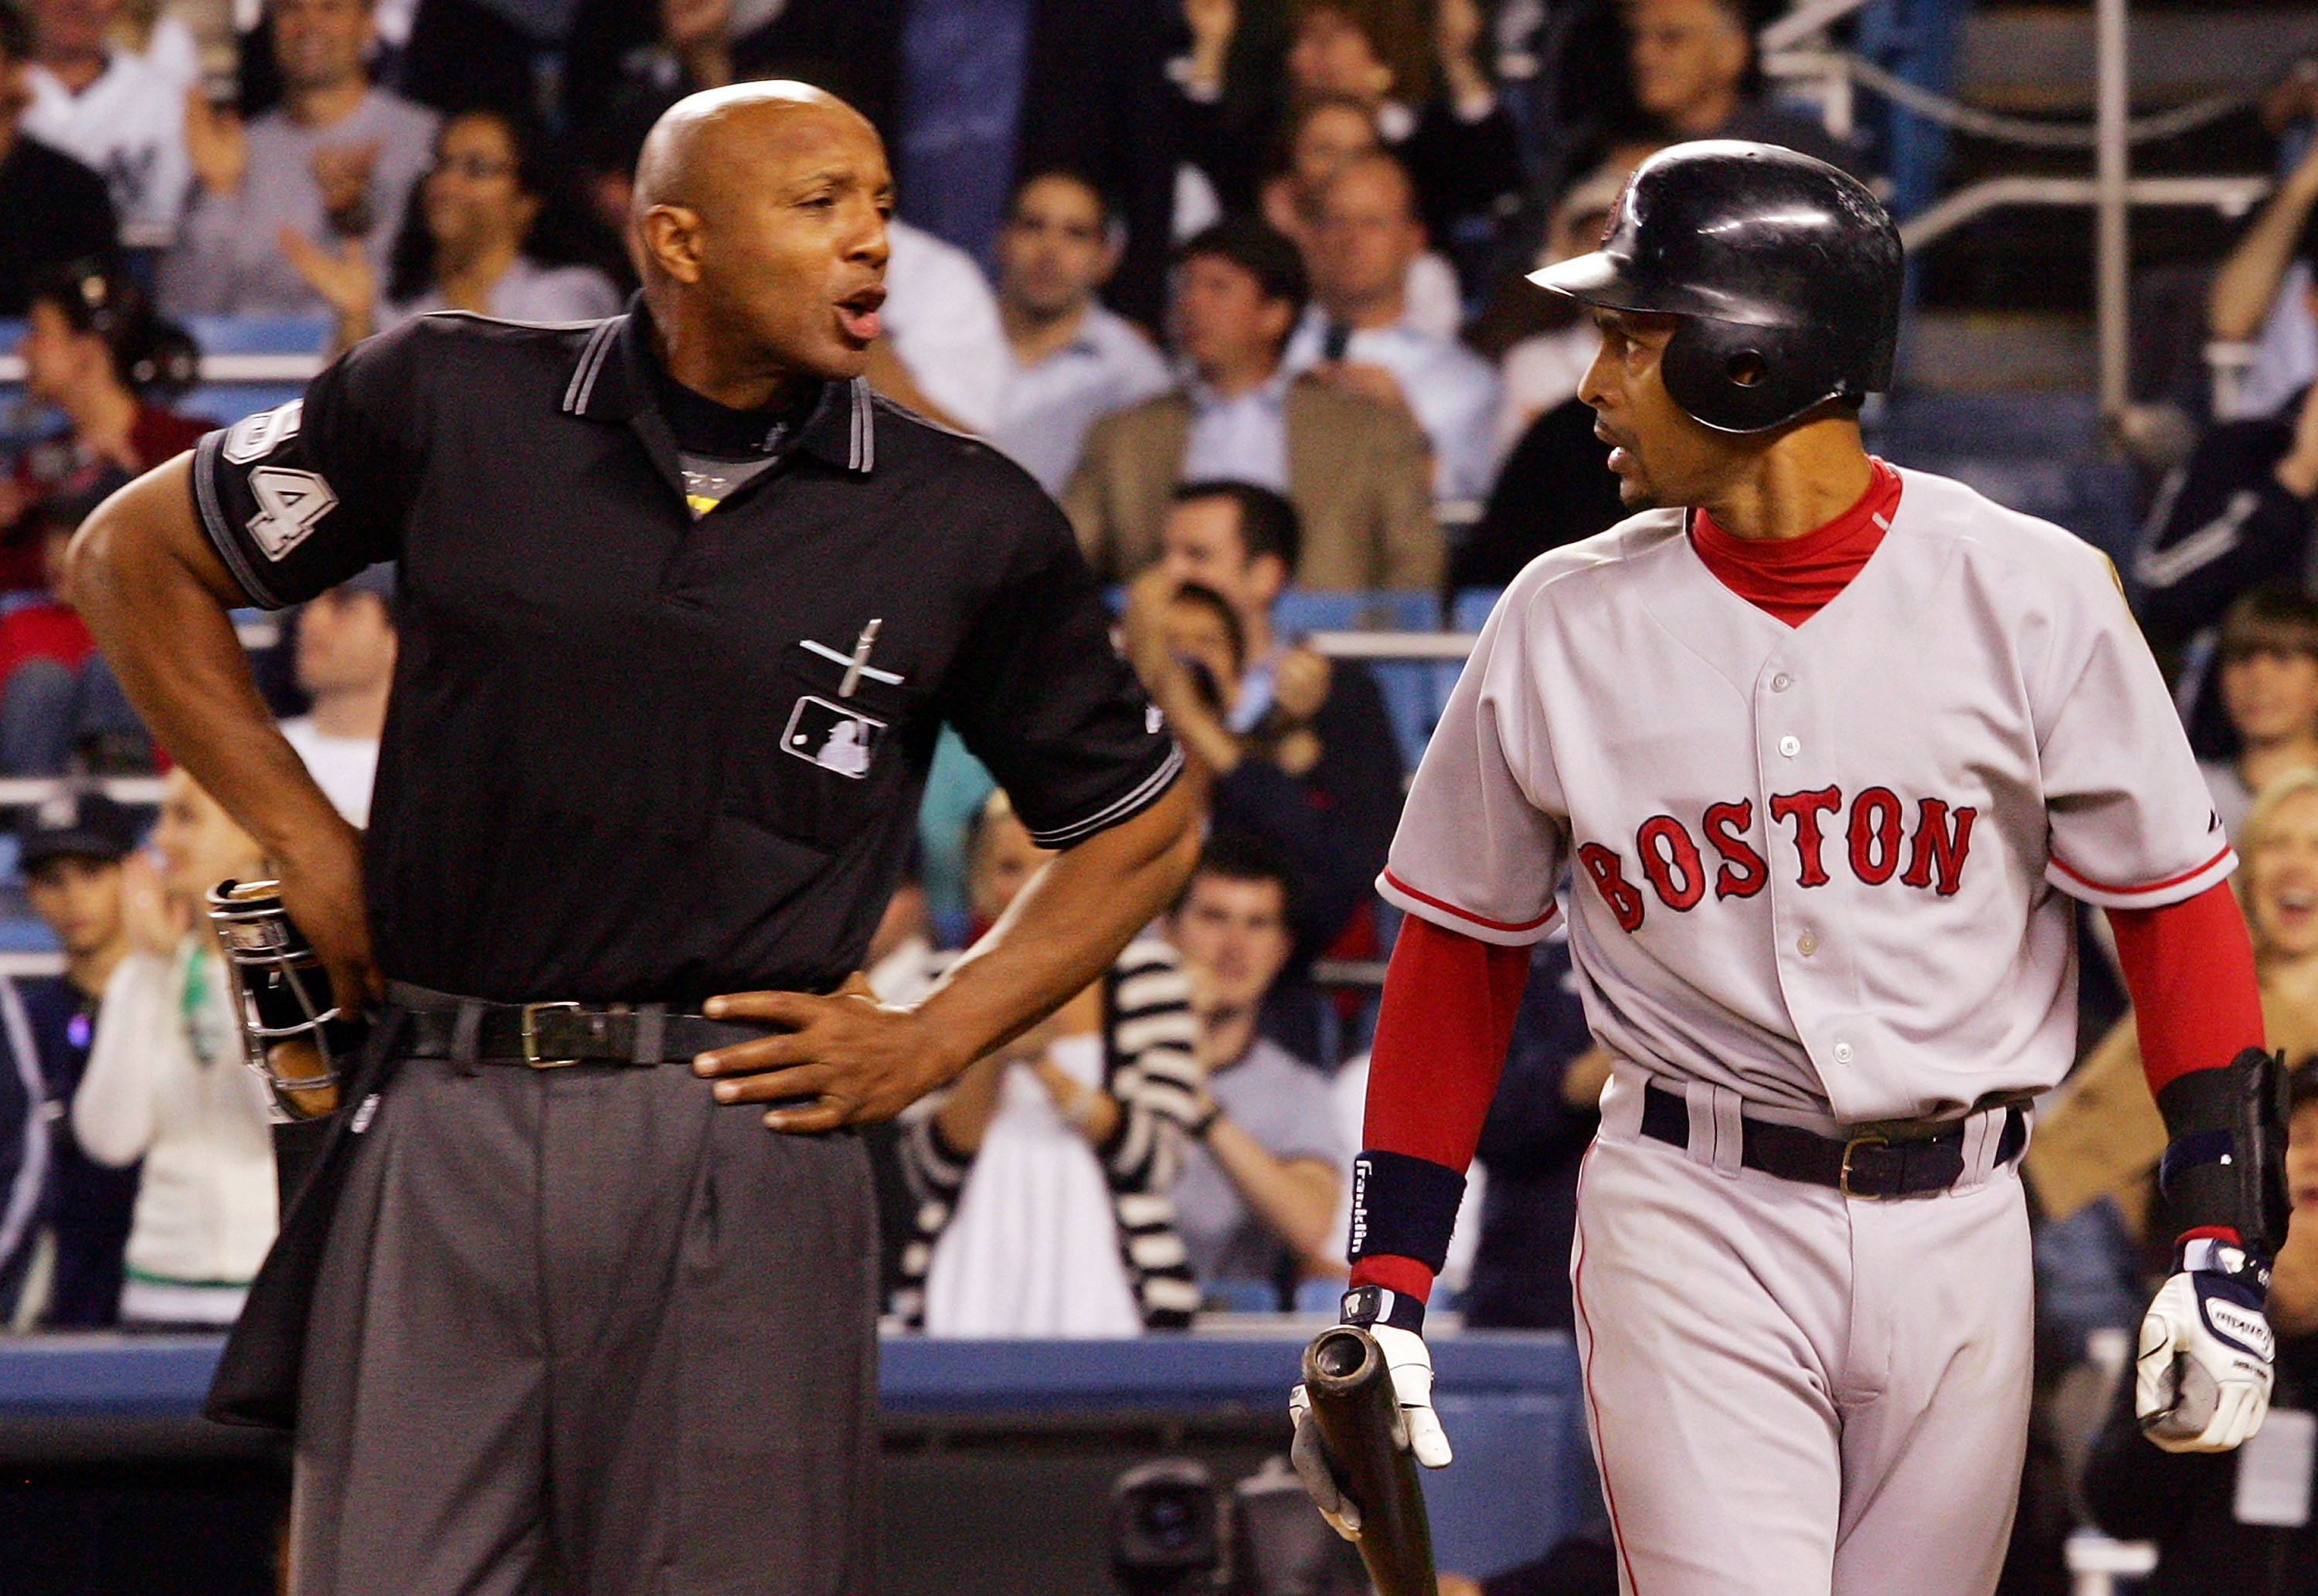 NEW YORK - MAY 23: Julio Lugo #23 of the Boston Red Sox argues a call with home plate umpire C.B. Bucknor in the ninth inning against the New York Yankees at Yankee Stadium on May 23, 2007 in the Bronx borough of New York City.  (Photo by Jim McIsaac/Gett